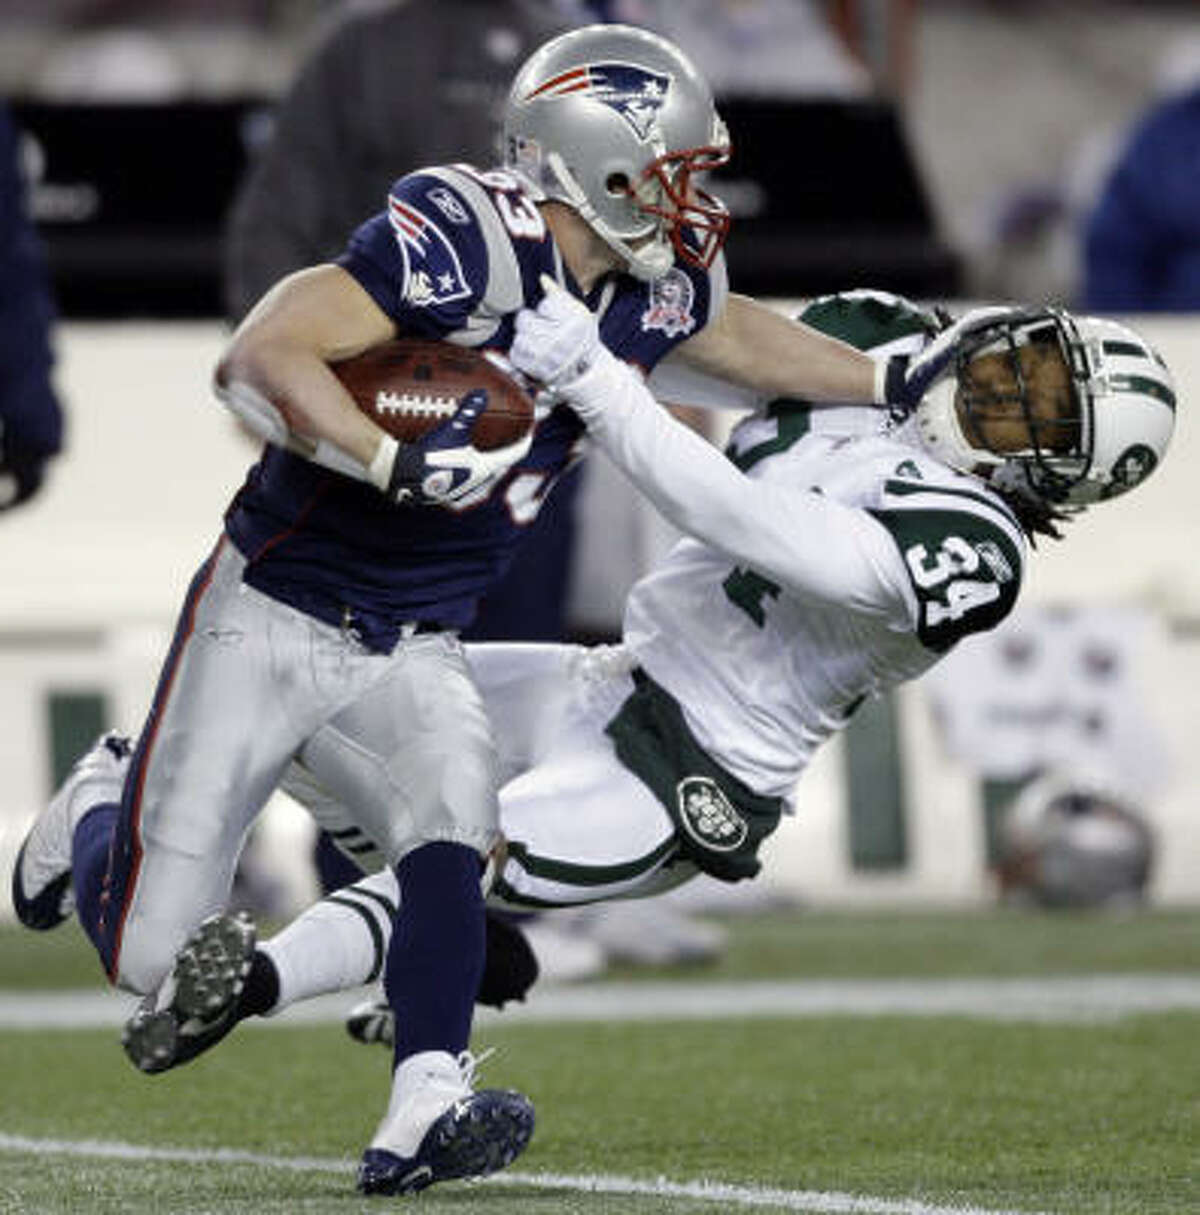 Nov. 22: Patriots 31, Jets 14 Patriots wide receiver Wes Welker puts a stiff-arm on Jets cornerback Marquice Cole.